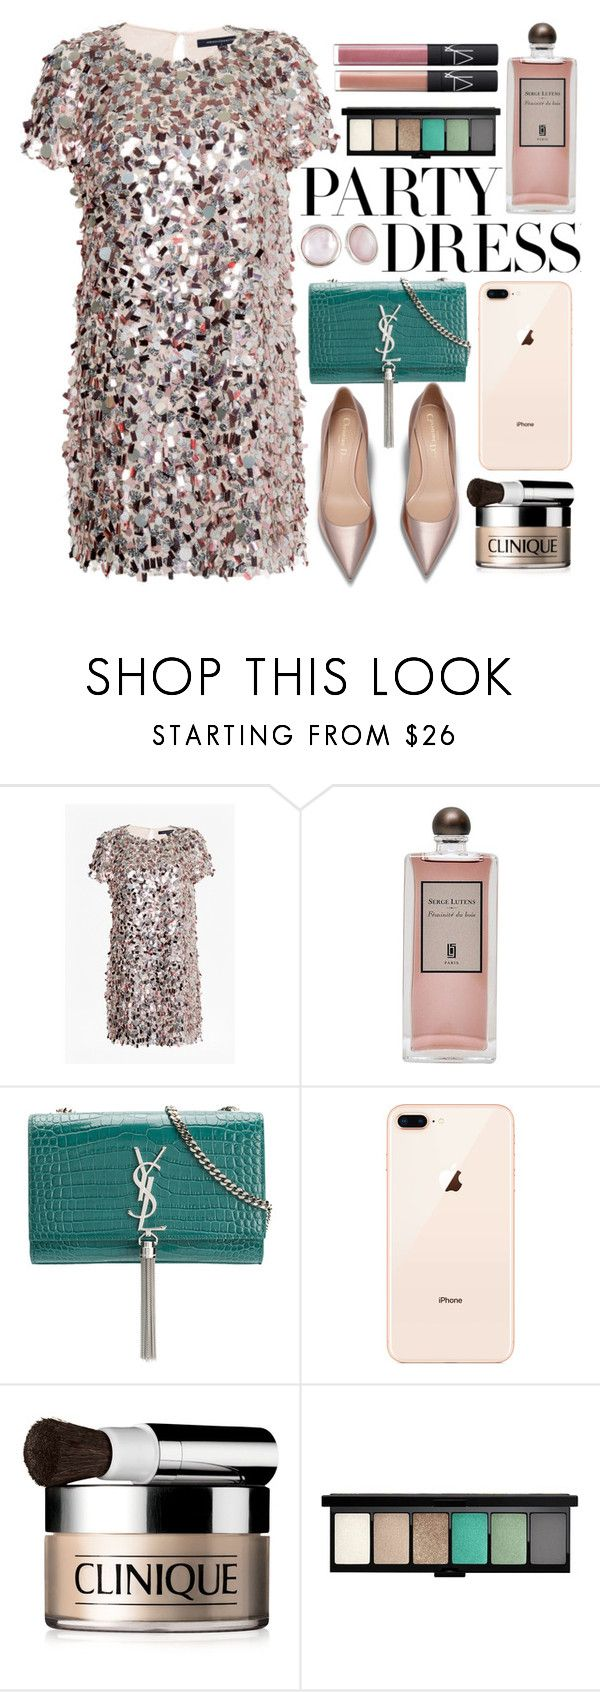 386 best @POLYVORE images on Pinterest | Betsey johnson, Casetify ...